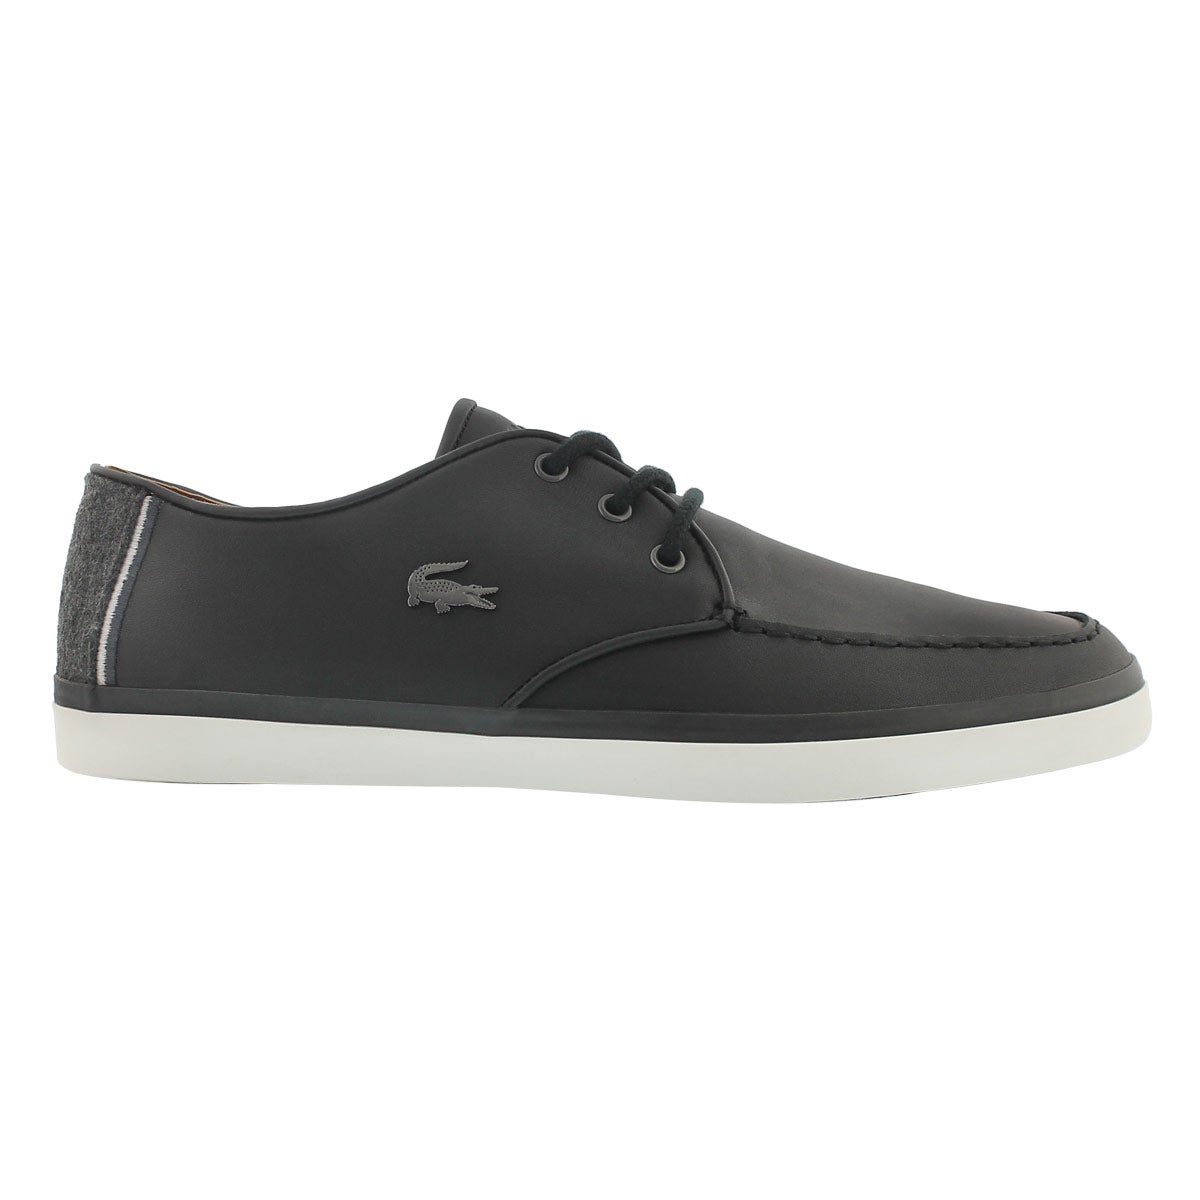 Mns Sevrin LCR black casual oxford